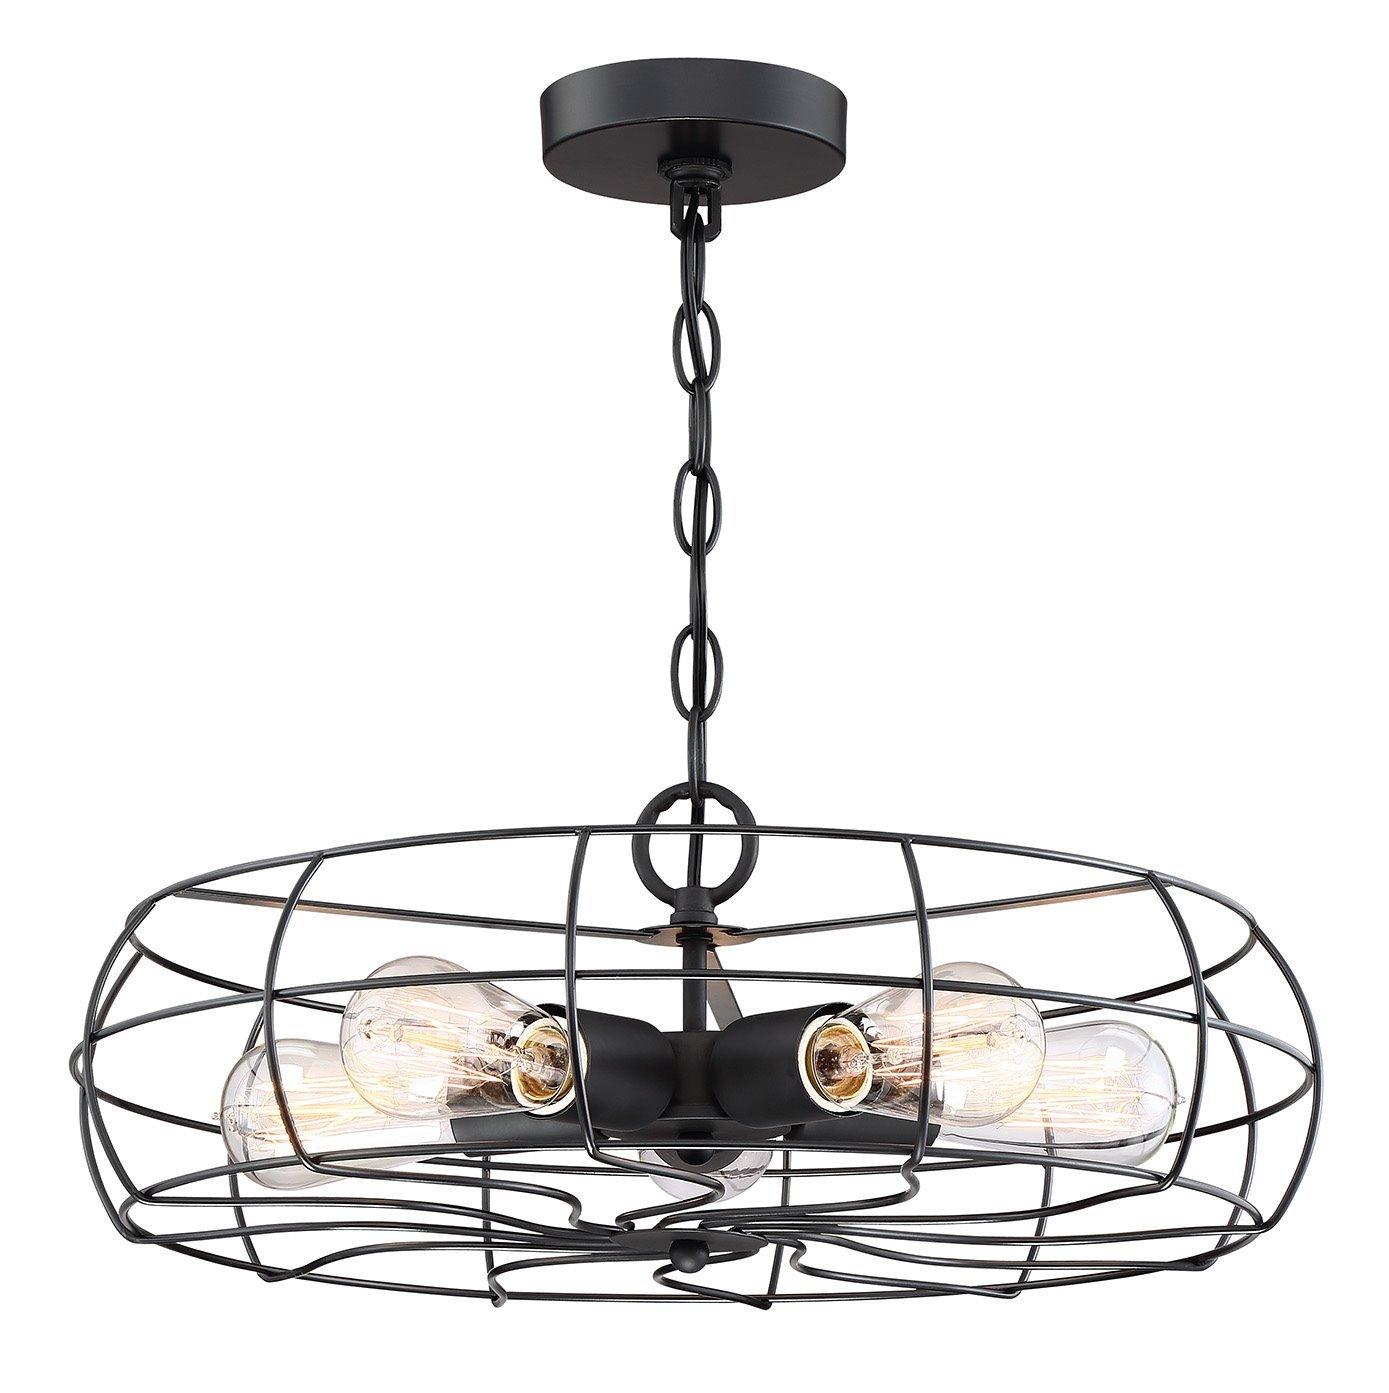 Revel/Kira Home Gage 18'' Industrial 5-Light Fan Style Metal Cage Chandelier, Matte Black Finish by Kira Home